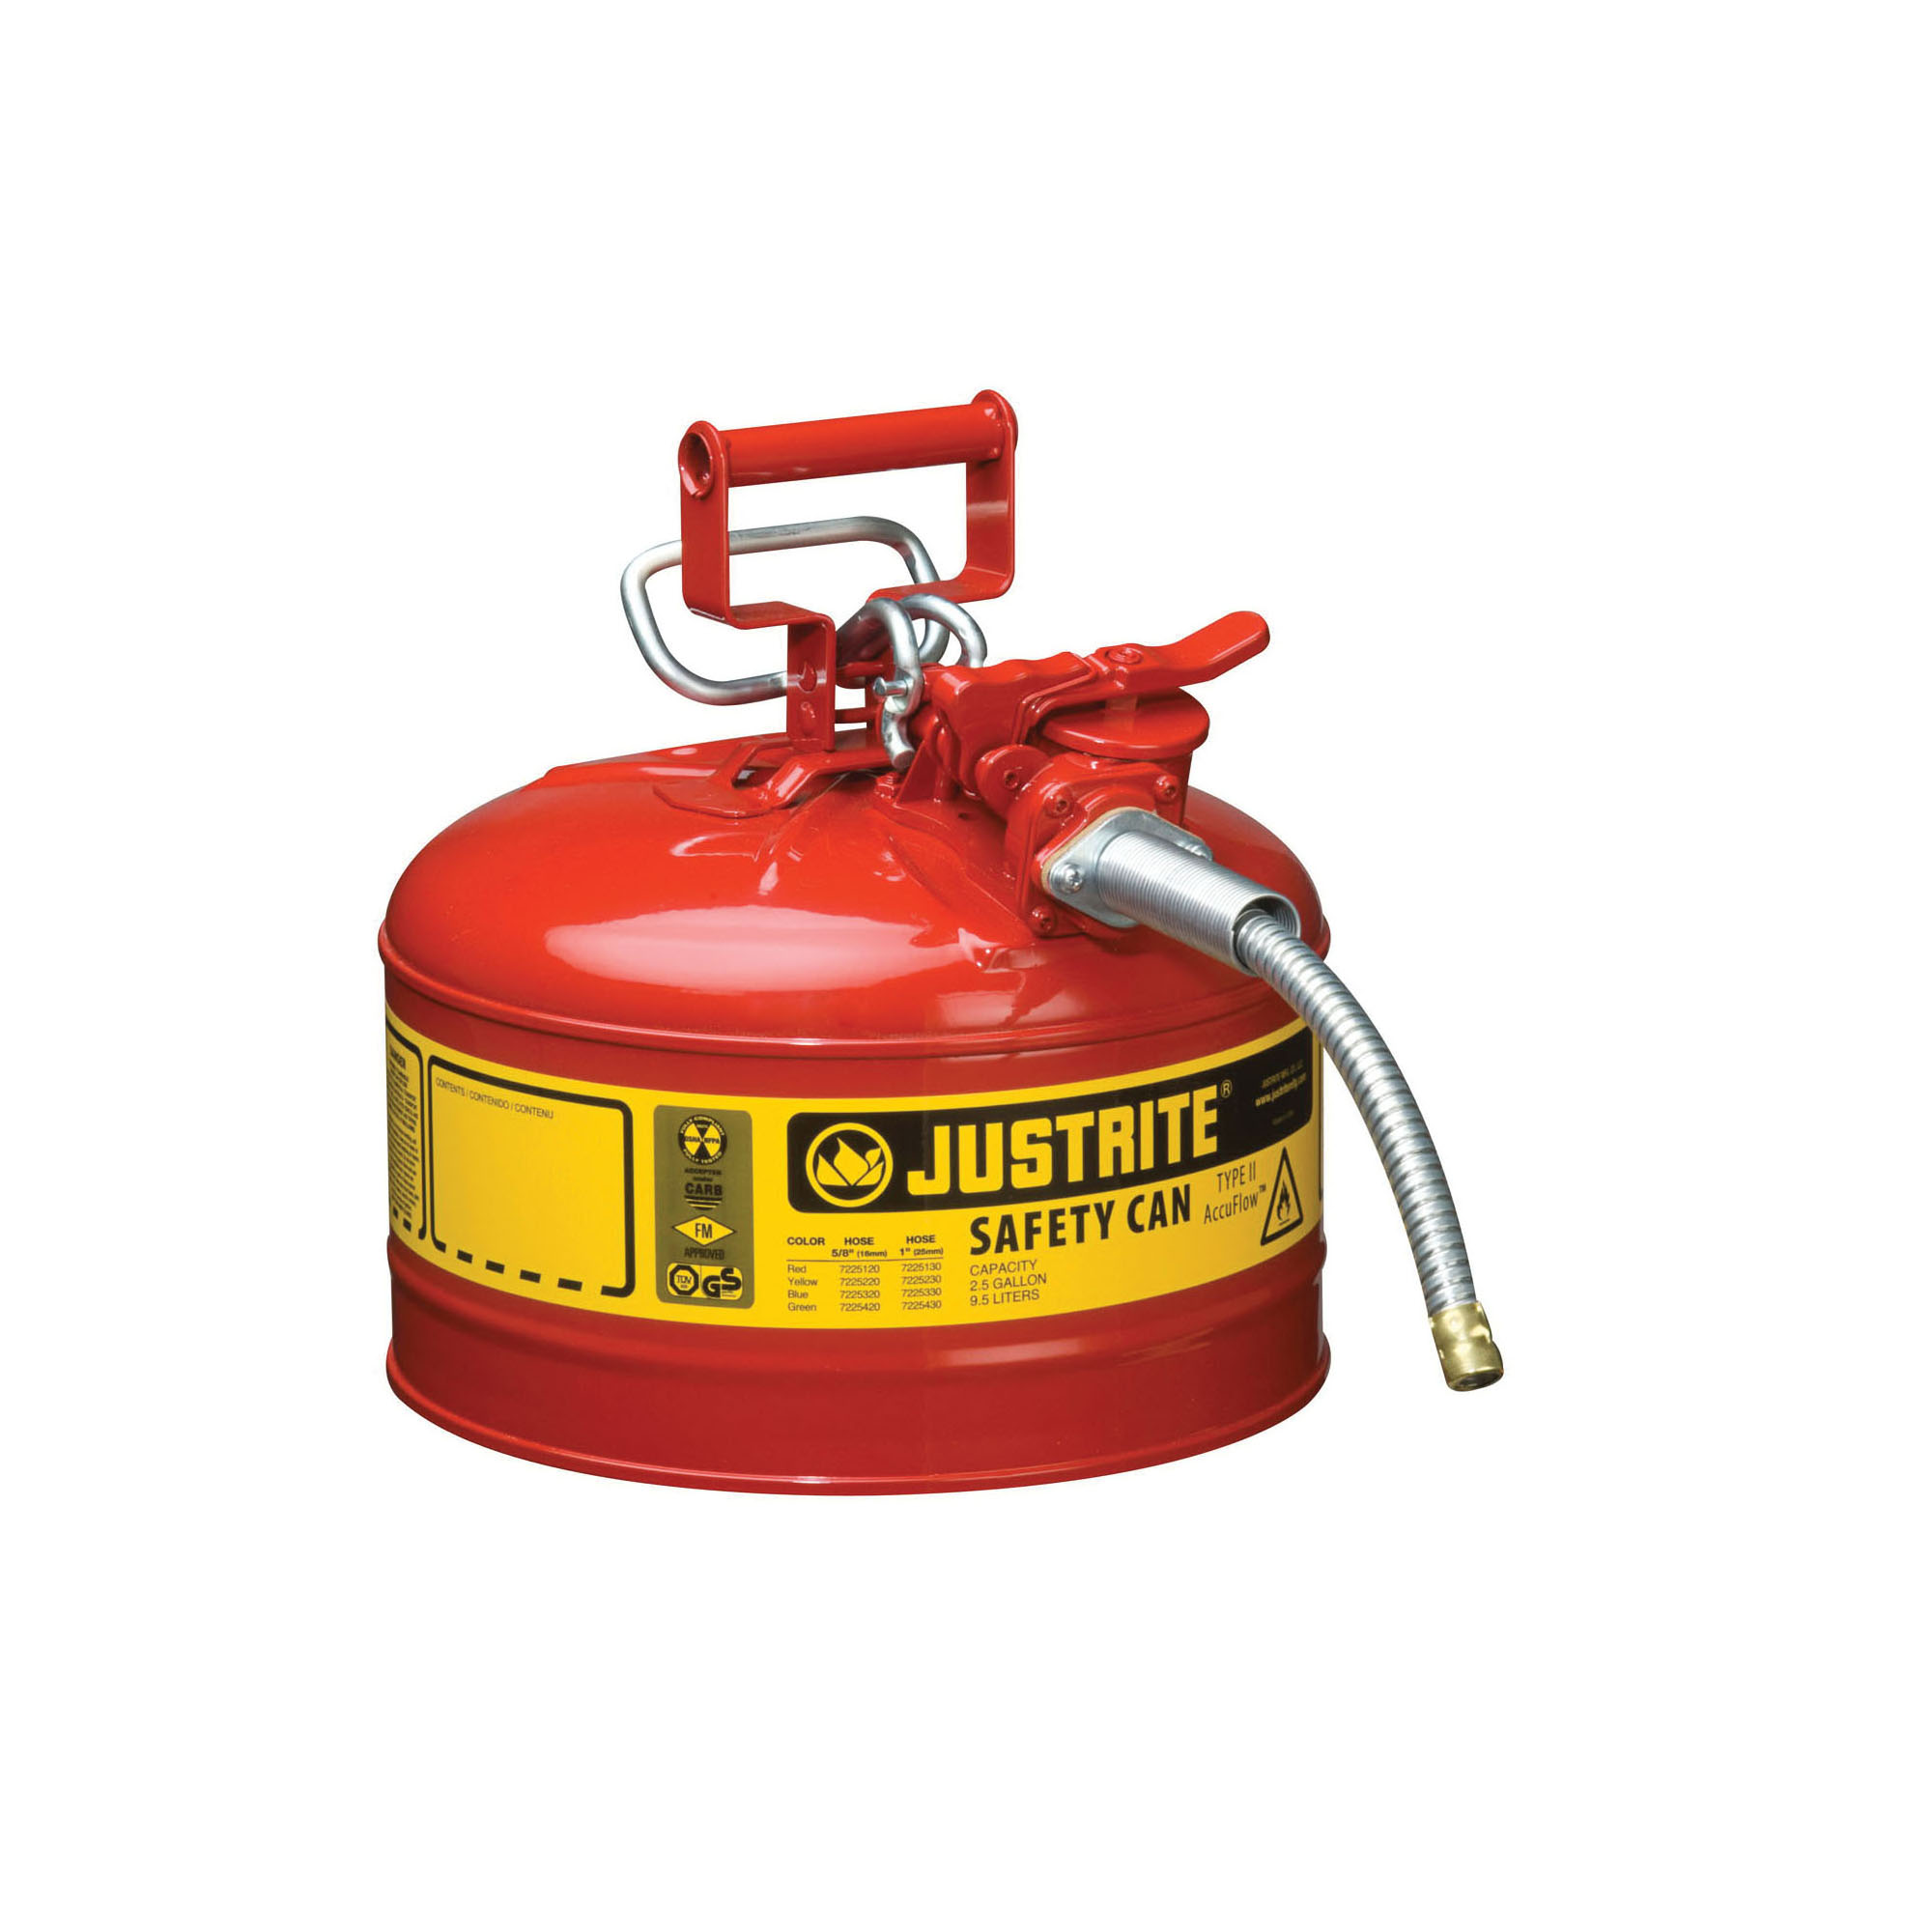 Justrite® Accuflow™ 7225120 Type II Safety Can With 5/8 in OD x 9 in L Metal Hose and Stainless Steel Flame Arrester, 2.5 gal Capacity, 11-3/4 in Dia x 12 in H, Steel, Red